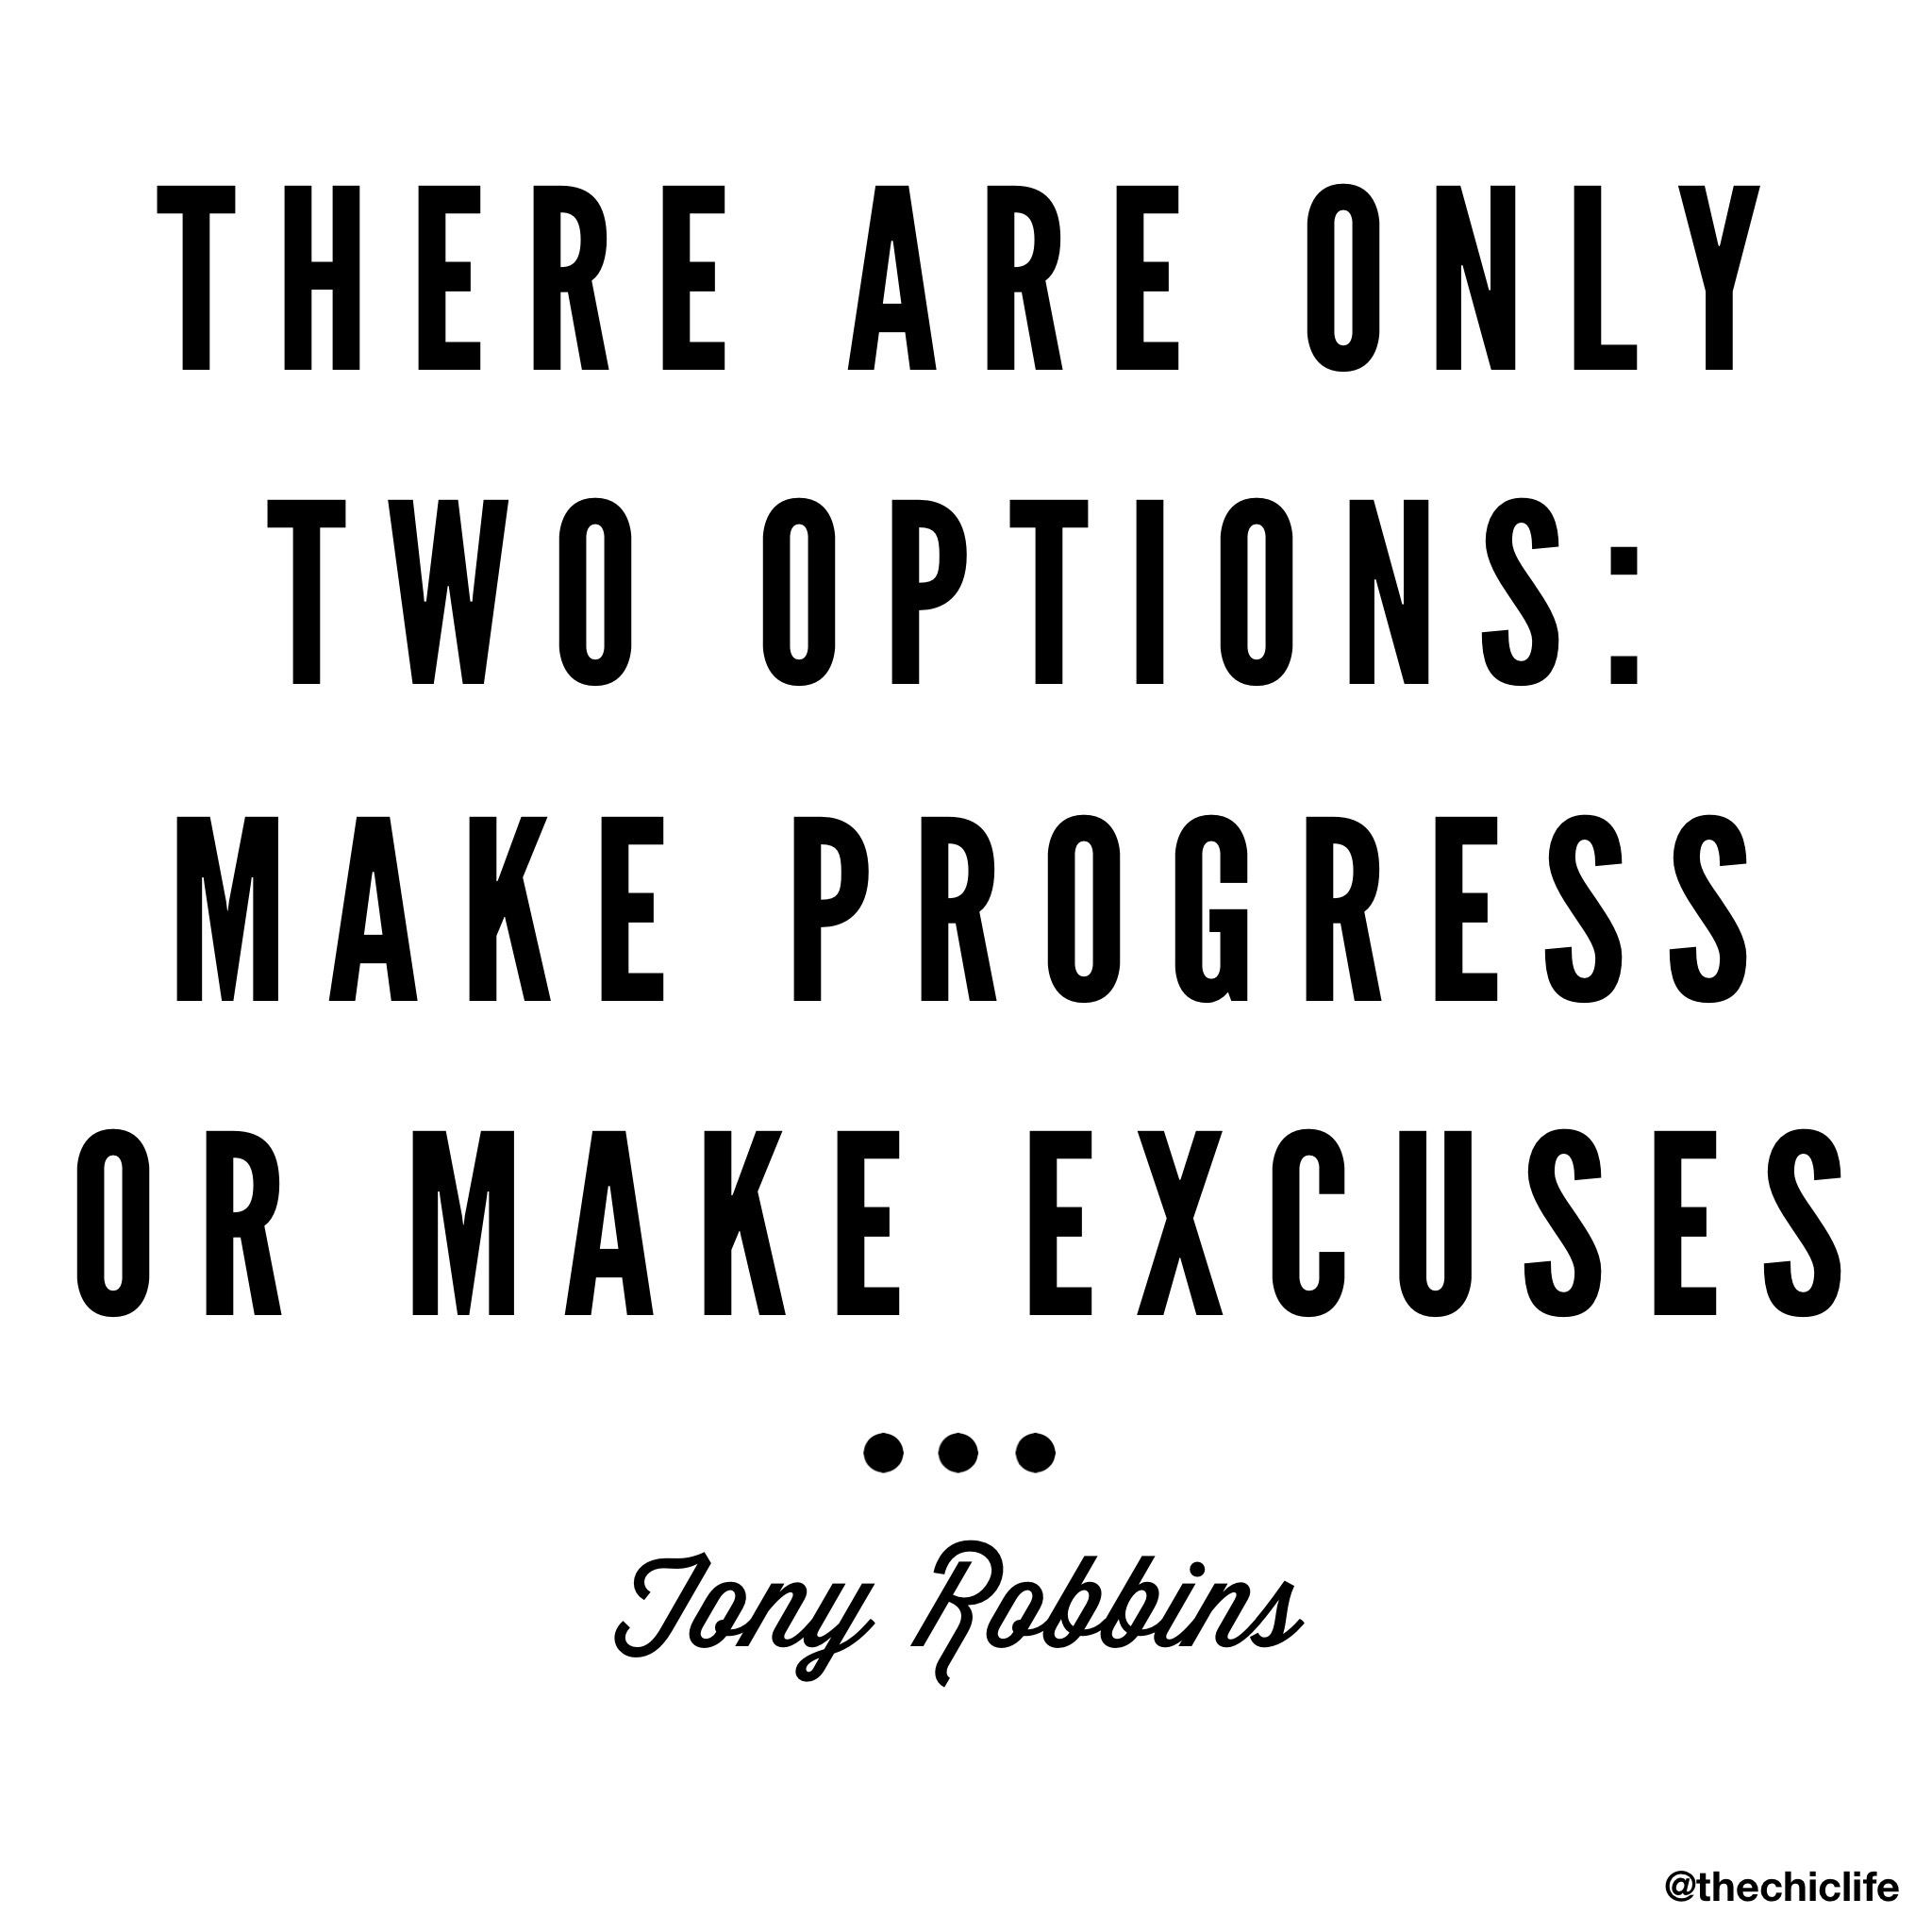 Make Progress or Make Excuses